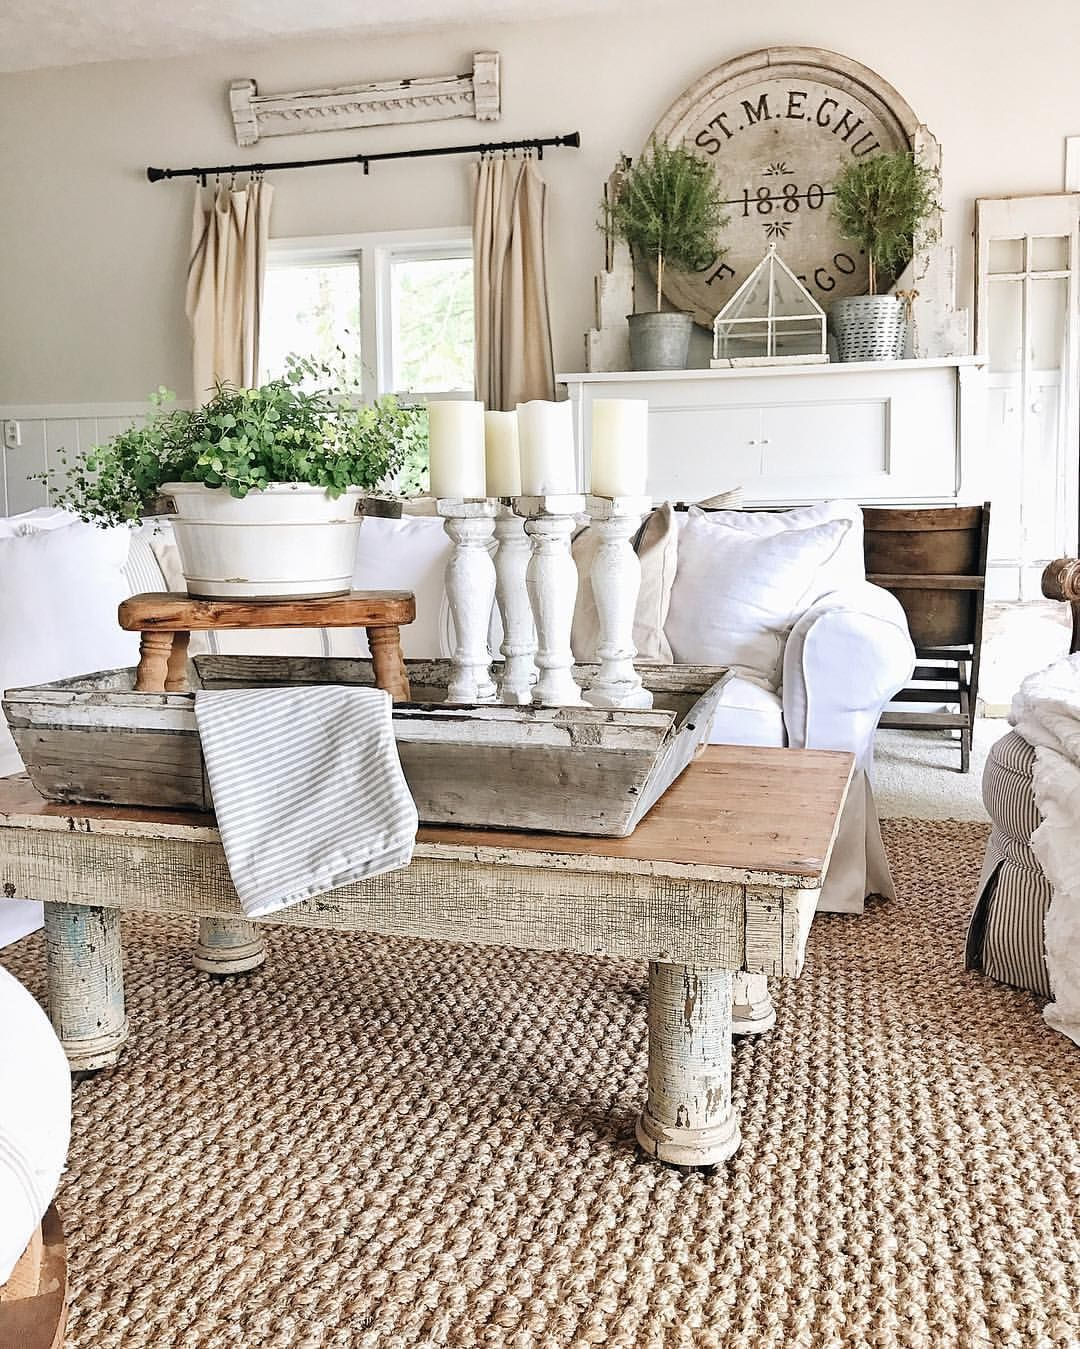 50 Stunning Farmhouse Furniture And Decor Ideas To Turn Your Home Into A Rustic Getaway Spot Cottage Style Living Room Farmhouse Decor Living Room Rustic Farmhouse Living Room